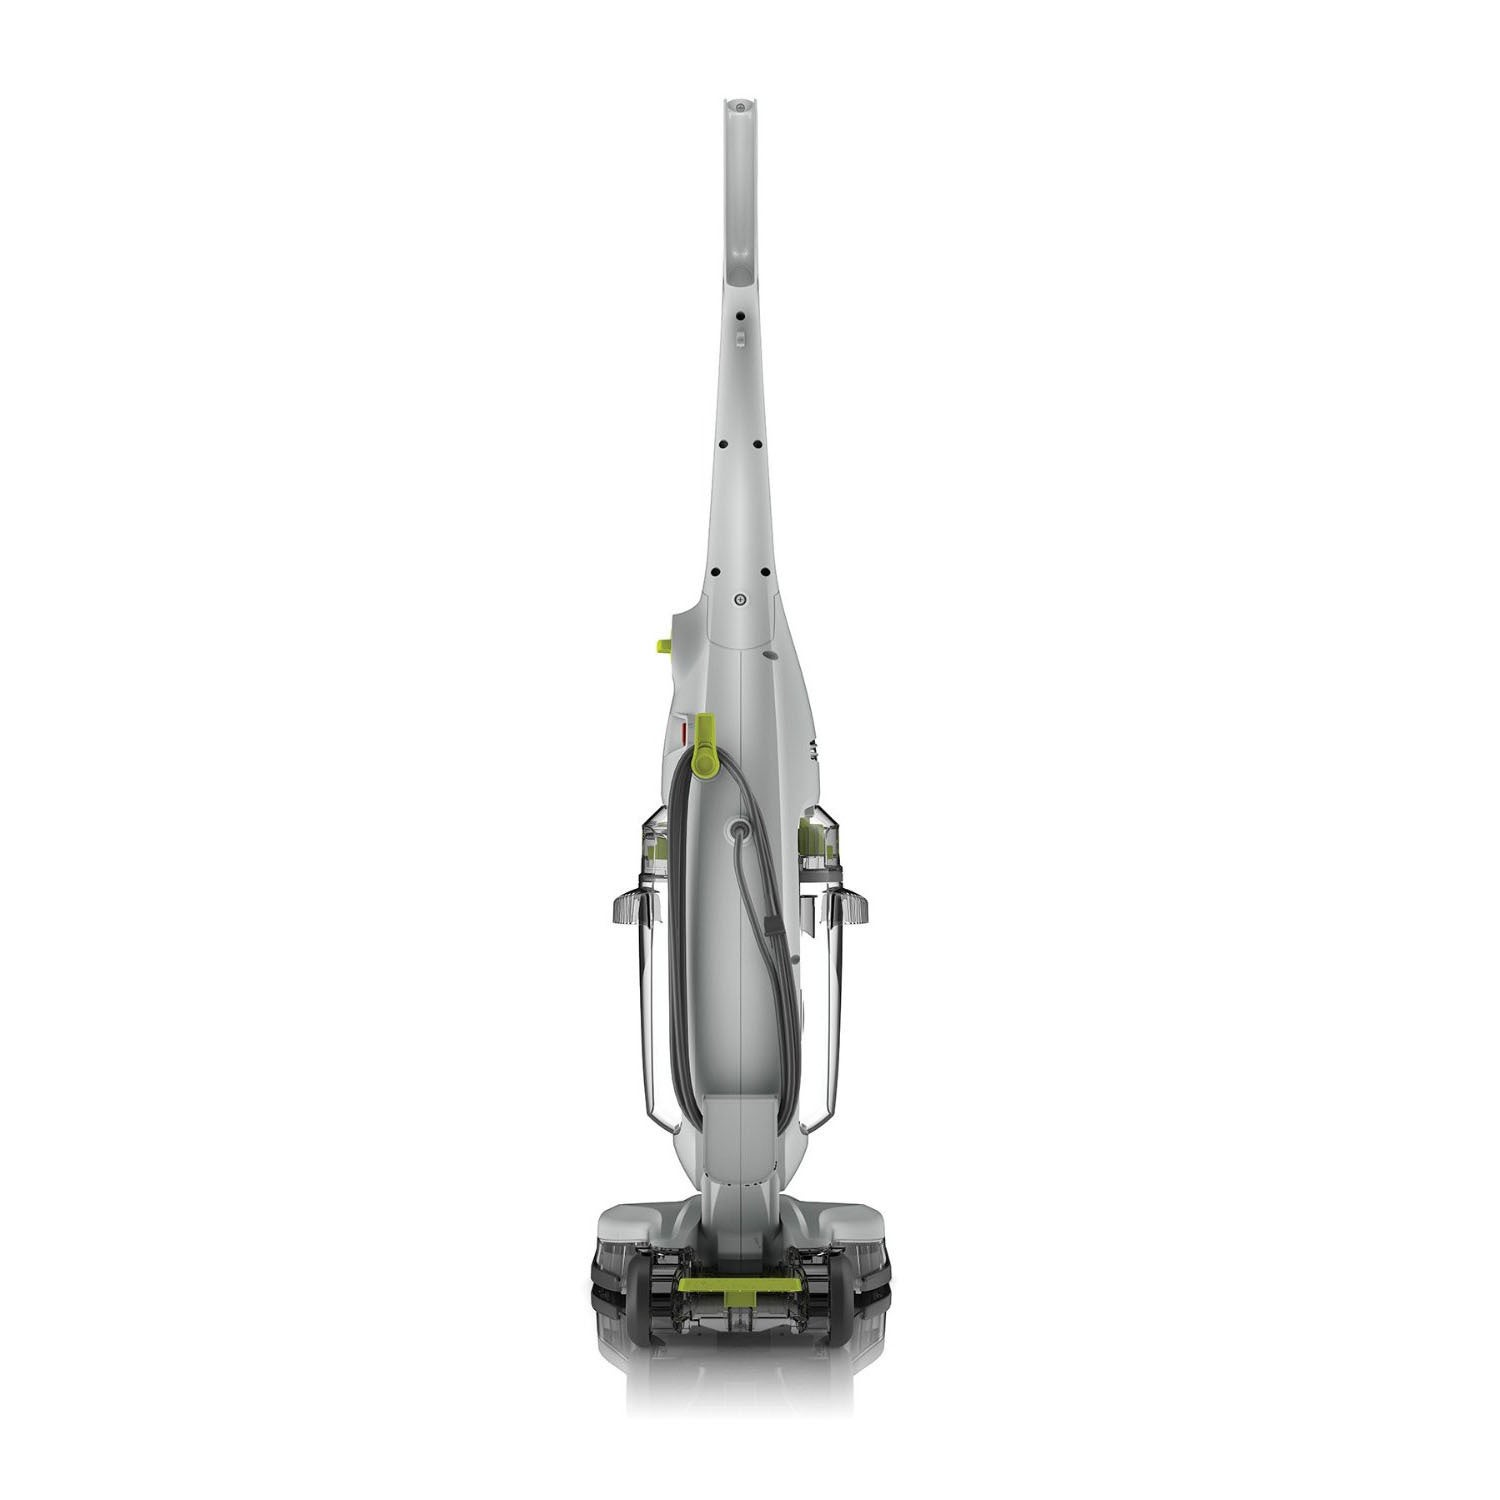 shampoos ace hoover shampoo cleaner oz floor concentrated carpet floors liquid jsp plus index clean product hardware